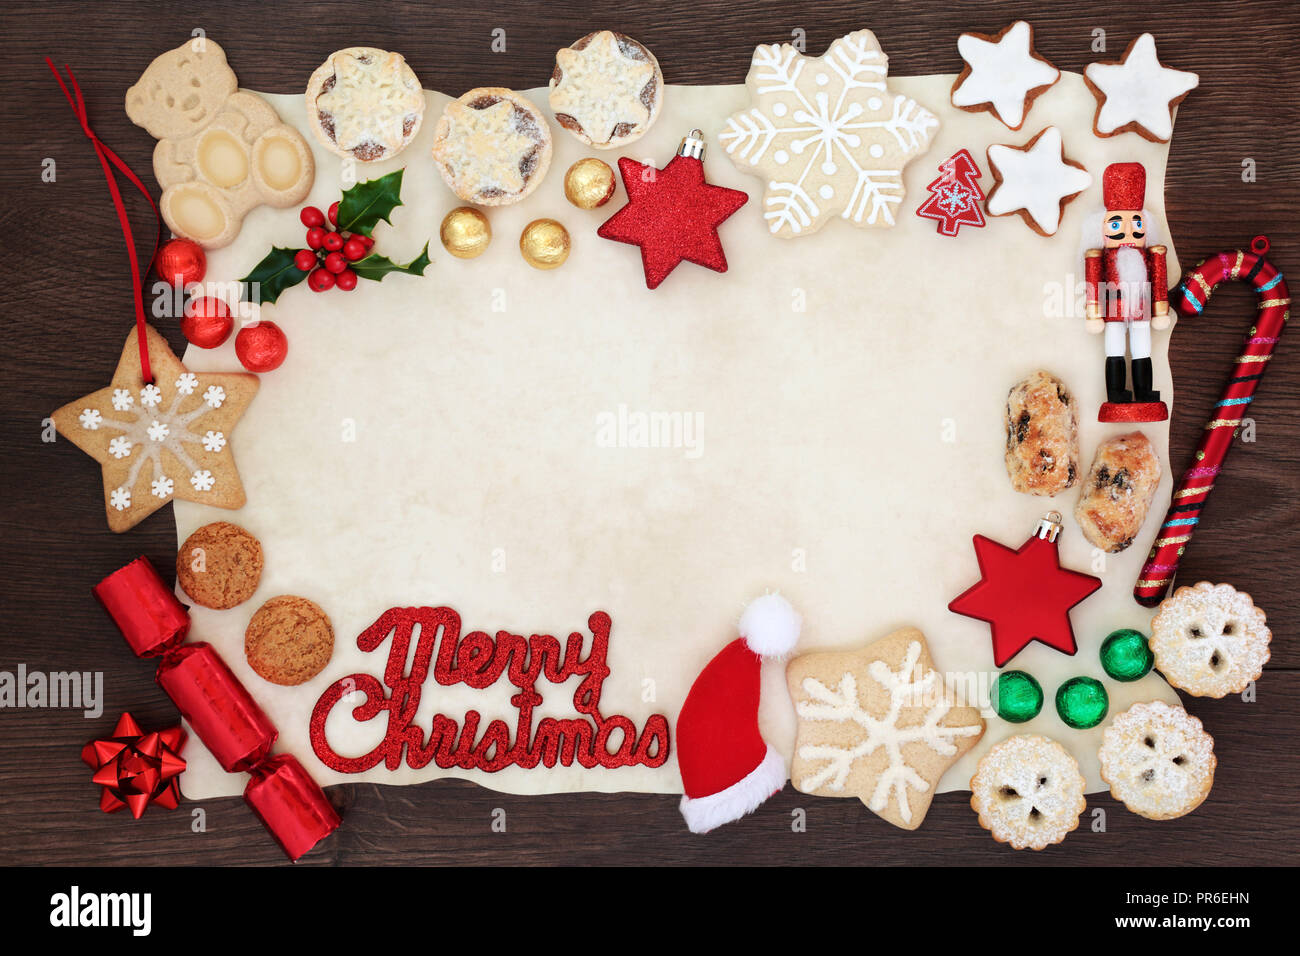 Merry Christmas background border with sign, tree decorations, biscuits, cakes, winter flora  and chocolates in foil on parchment paper on rustic wood - Stock Image